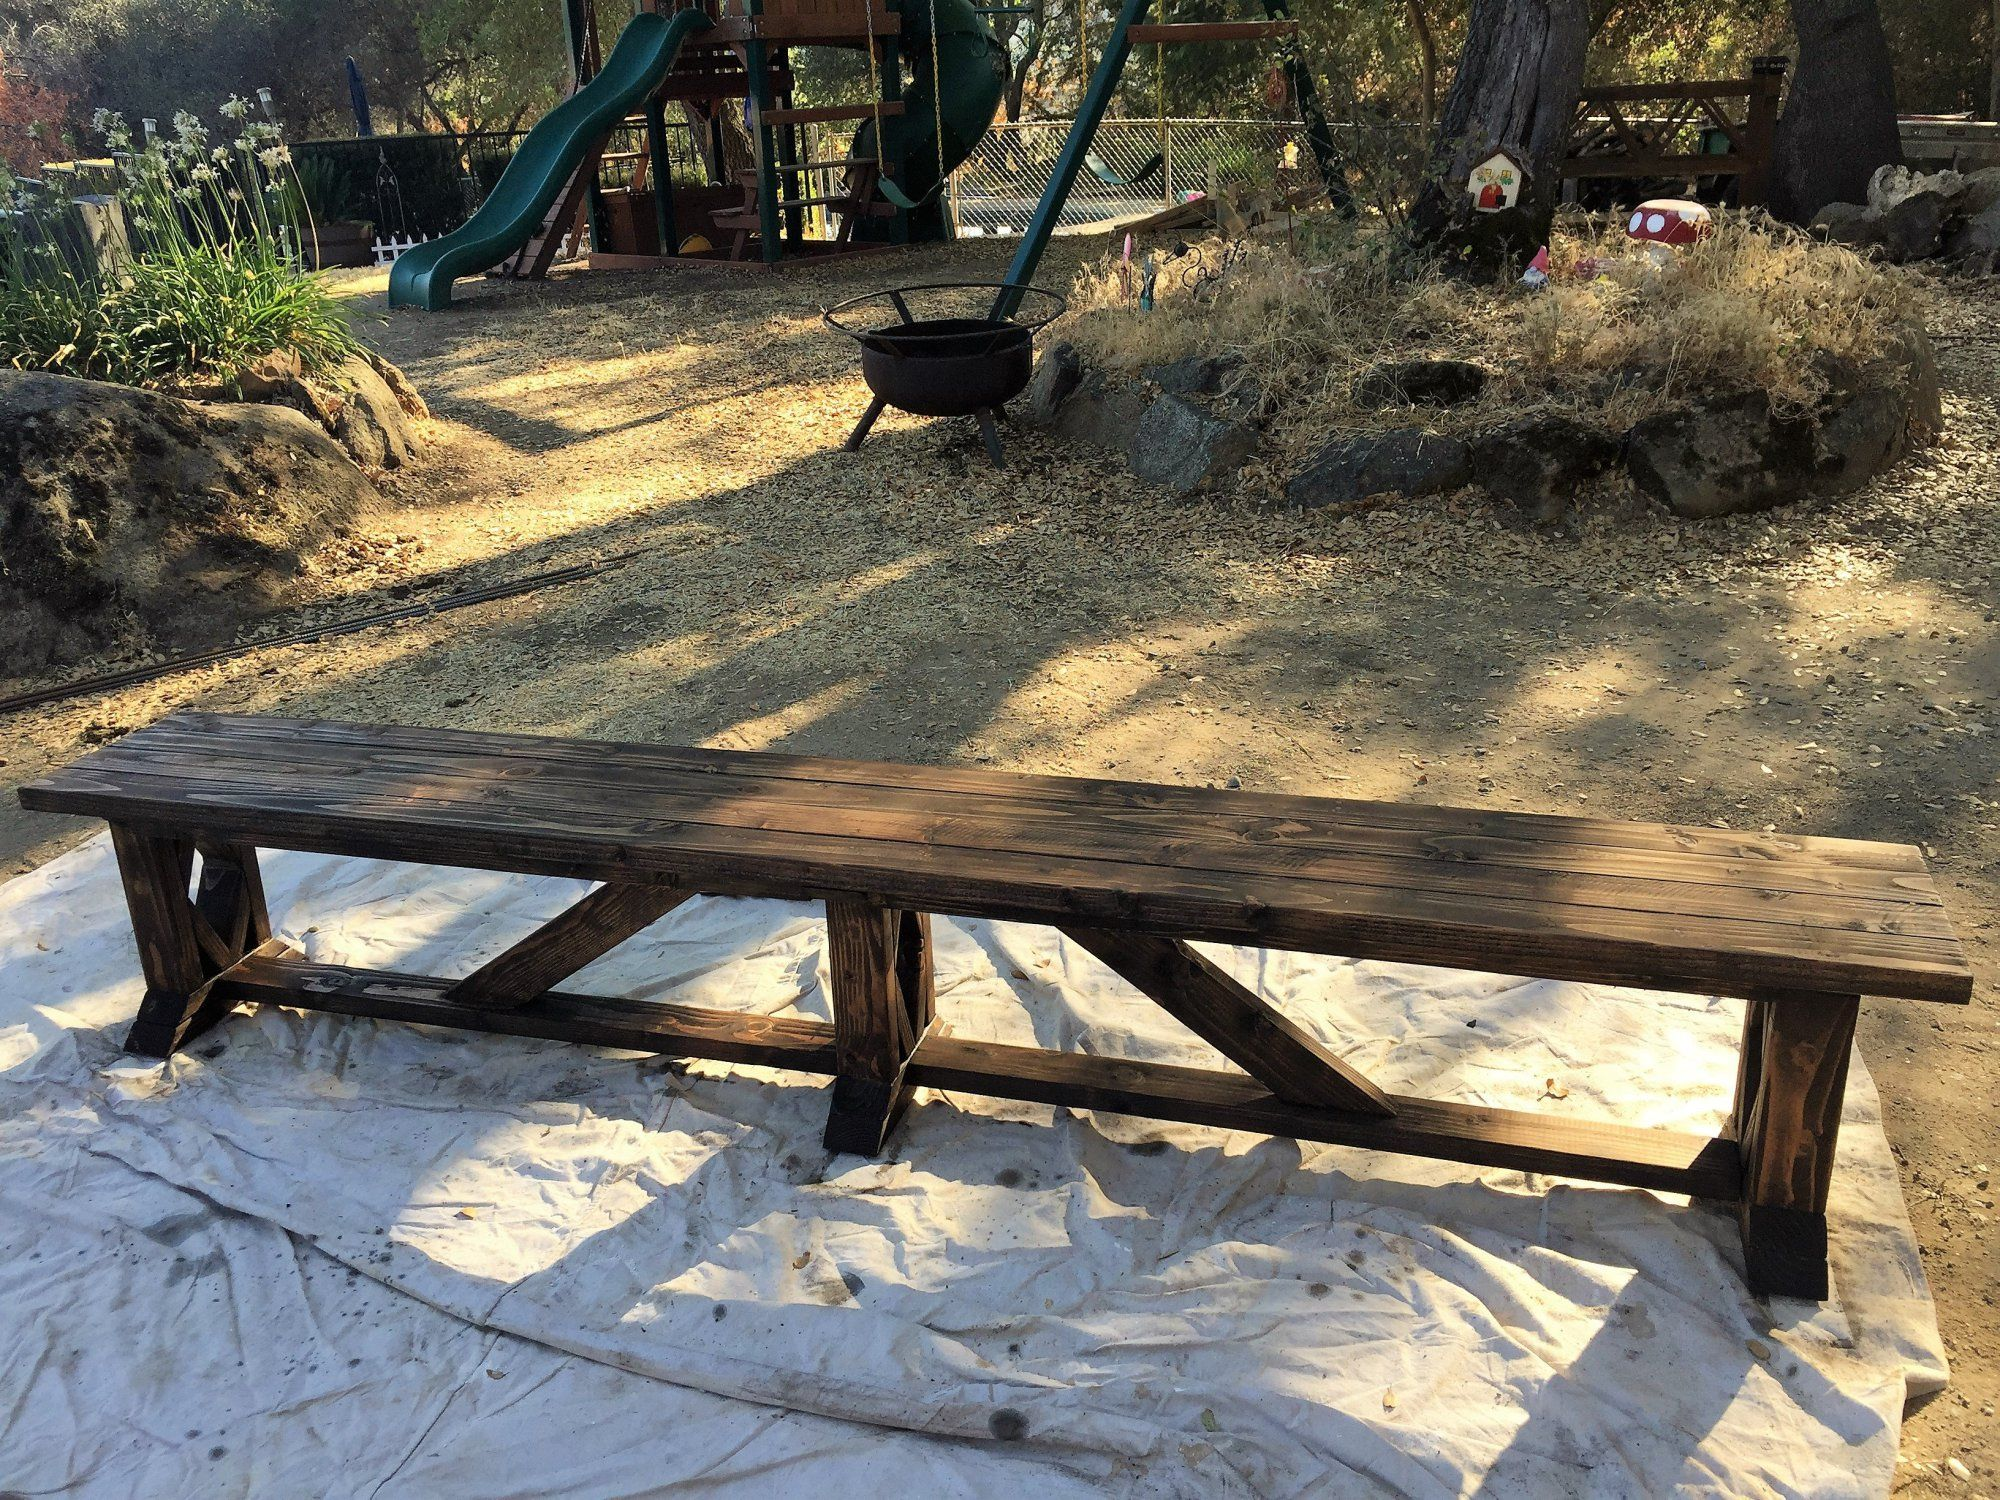 Wondrous Diy Extra Long Wood Bench Free Plans Diy Wood Bench Squirreltailoven Fun Painted Chair Ideas Images Squirreltailovenorg